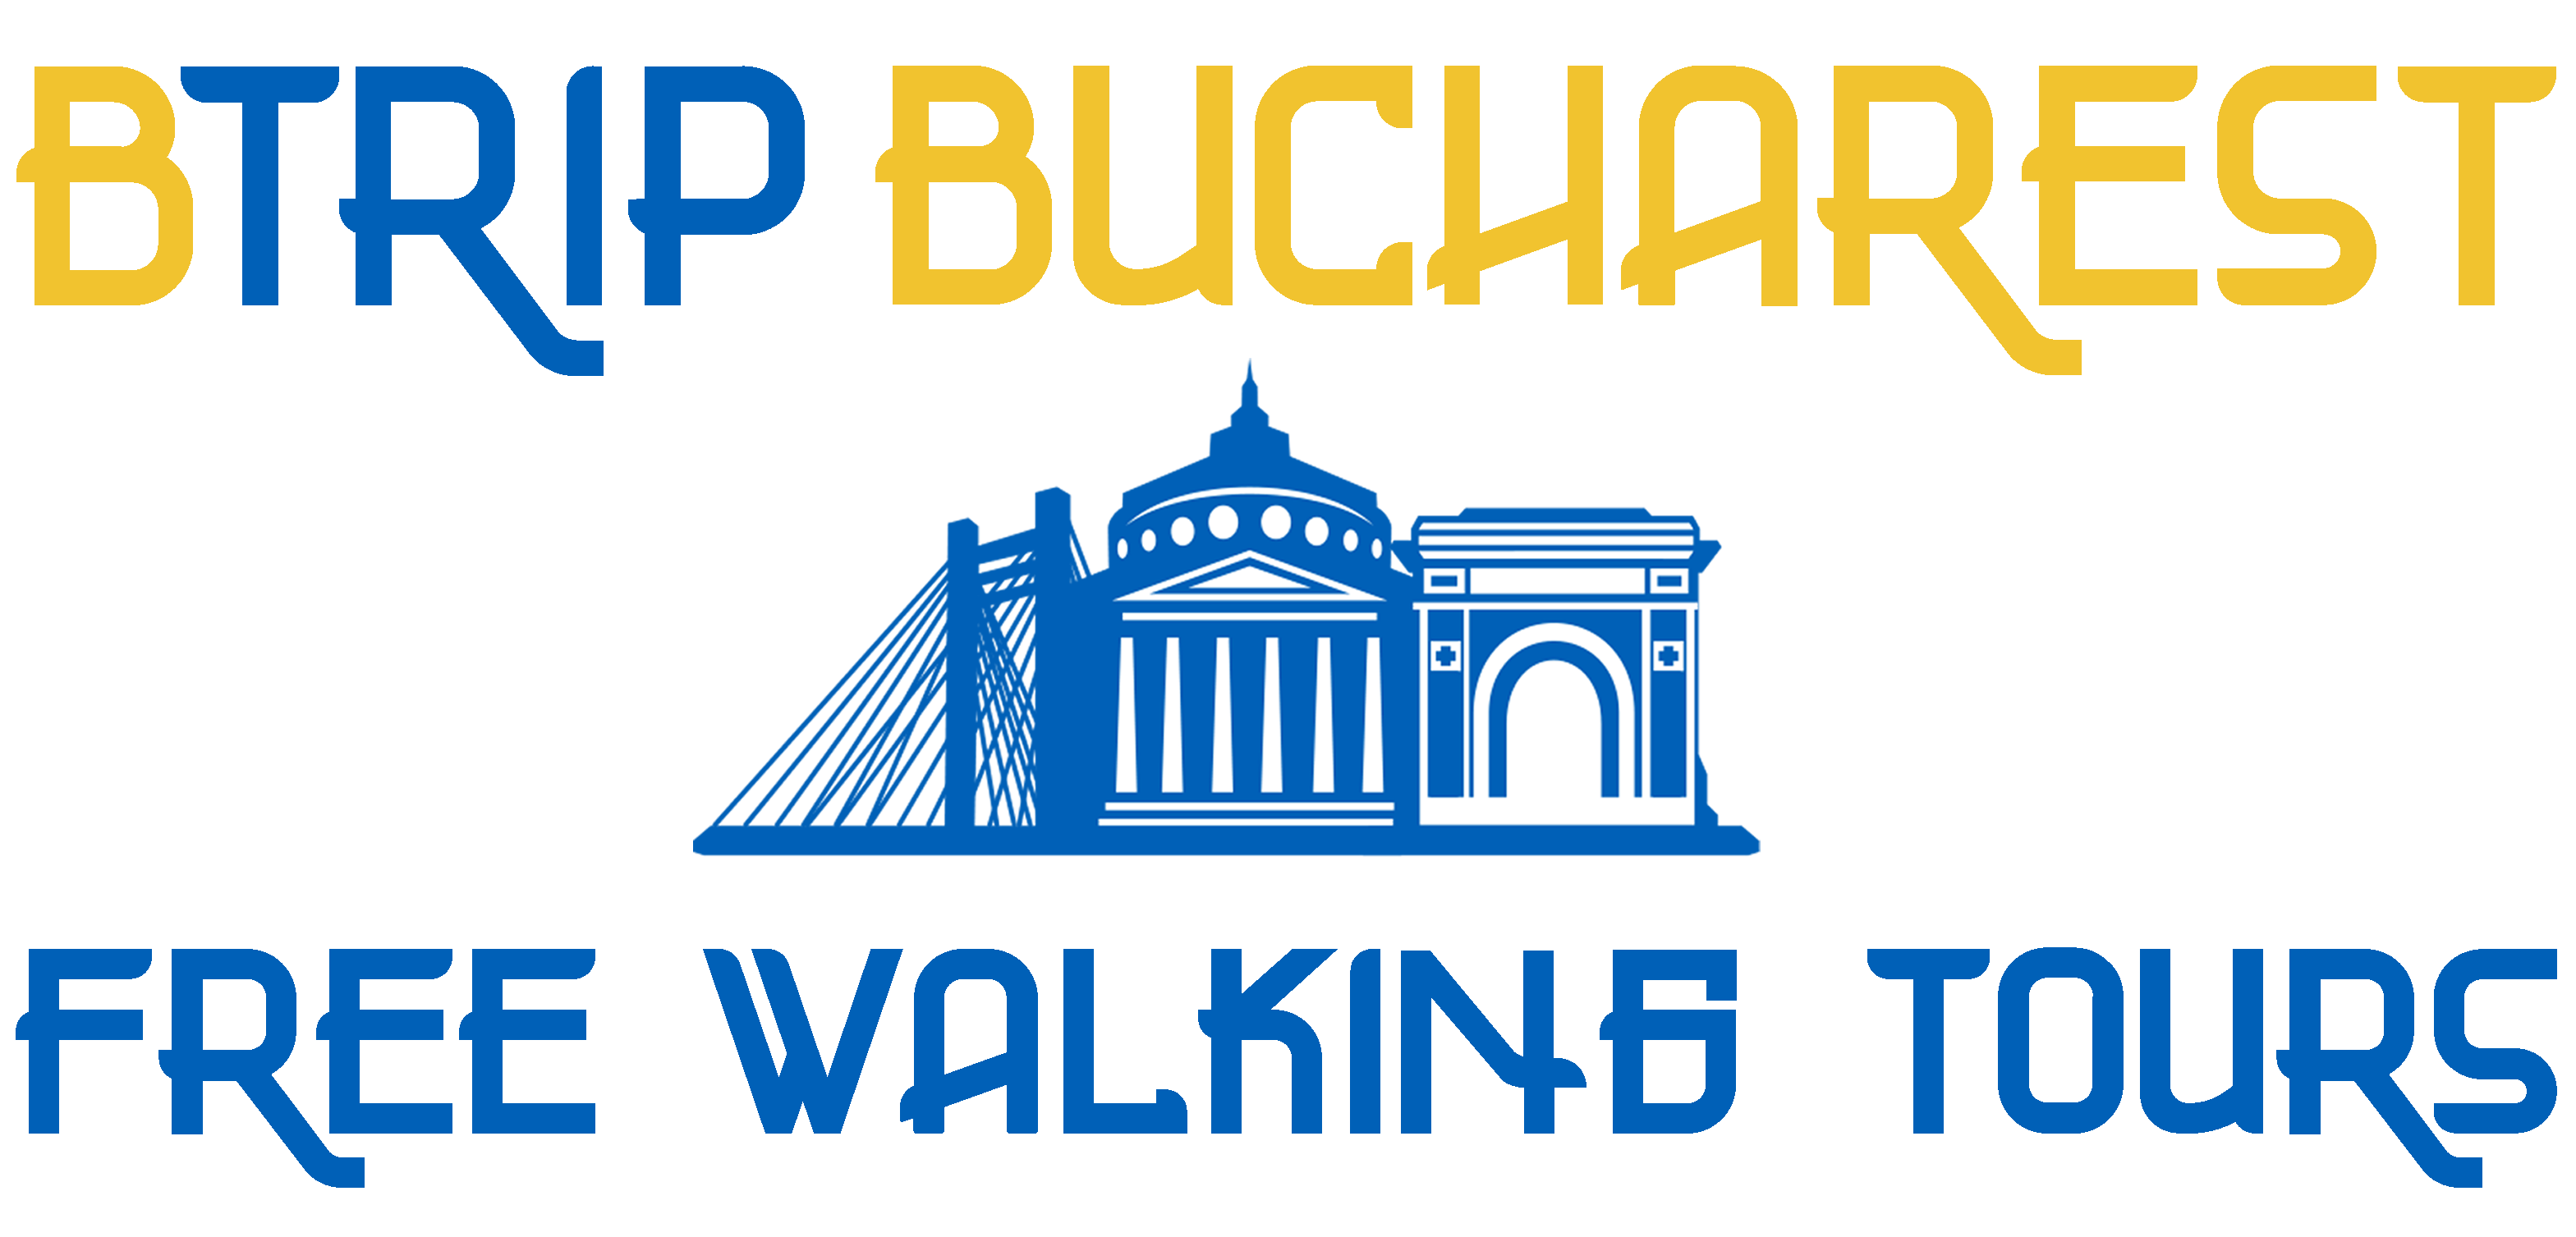 BTrip Bucharest Free Walking Tours